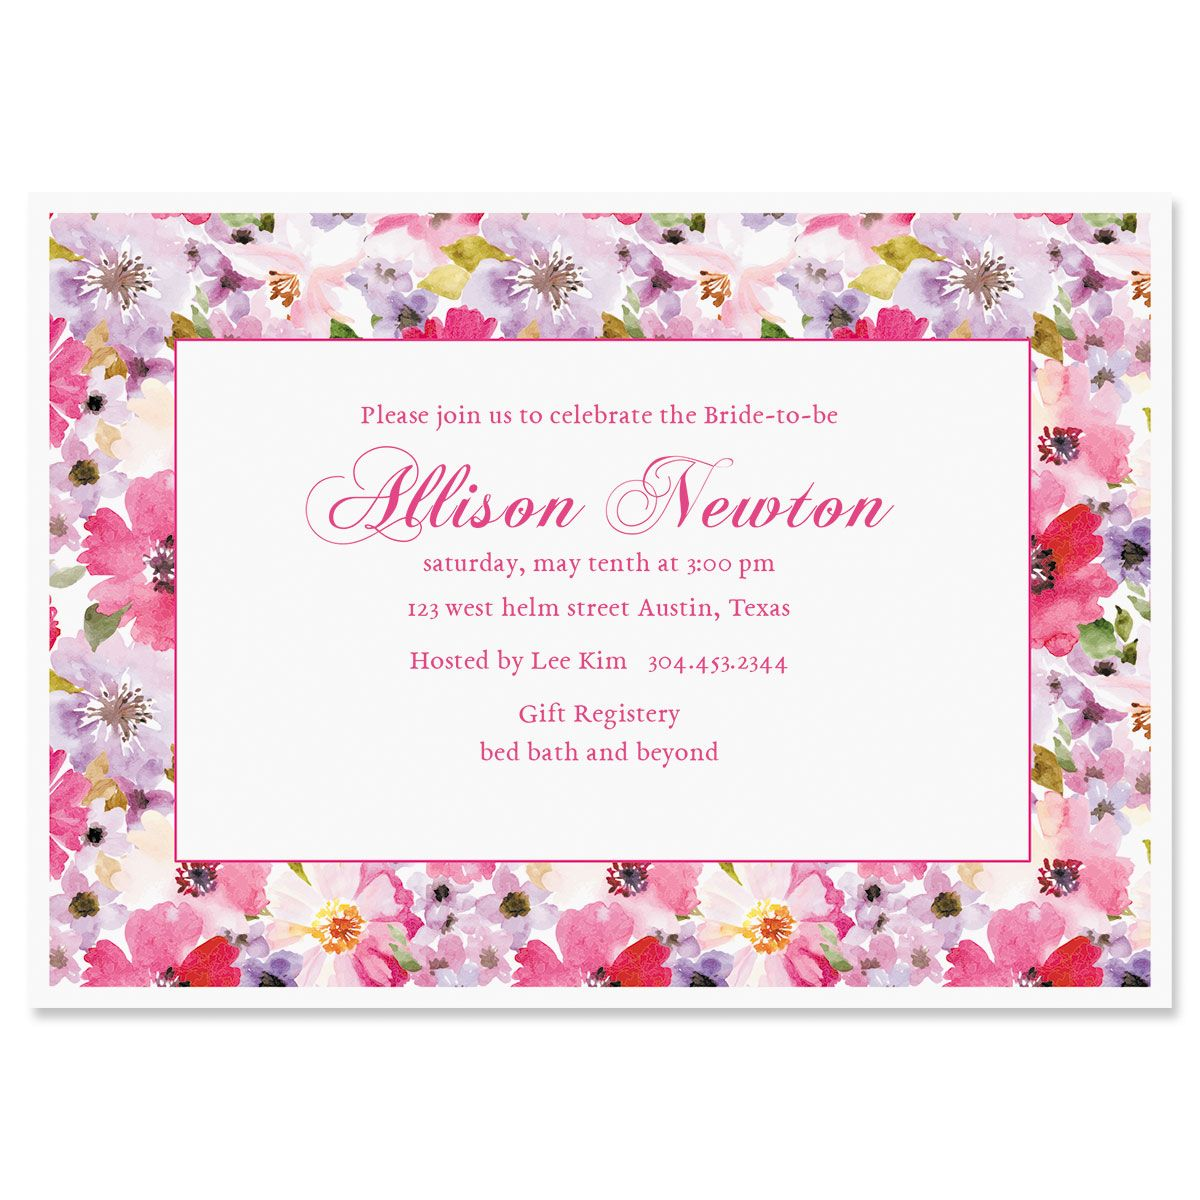 Bountiful Floral Personalized Invitations